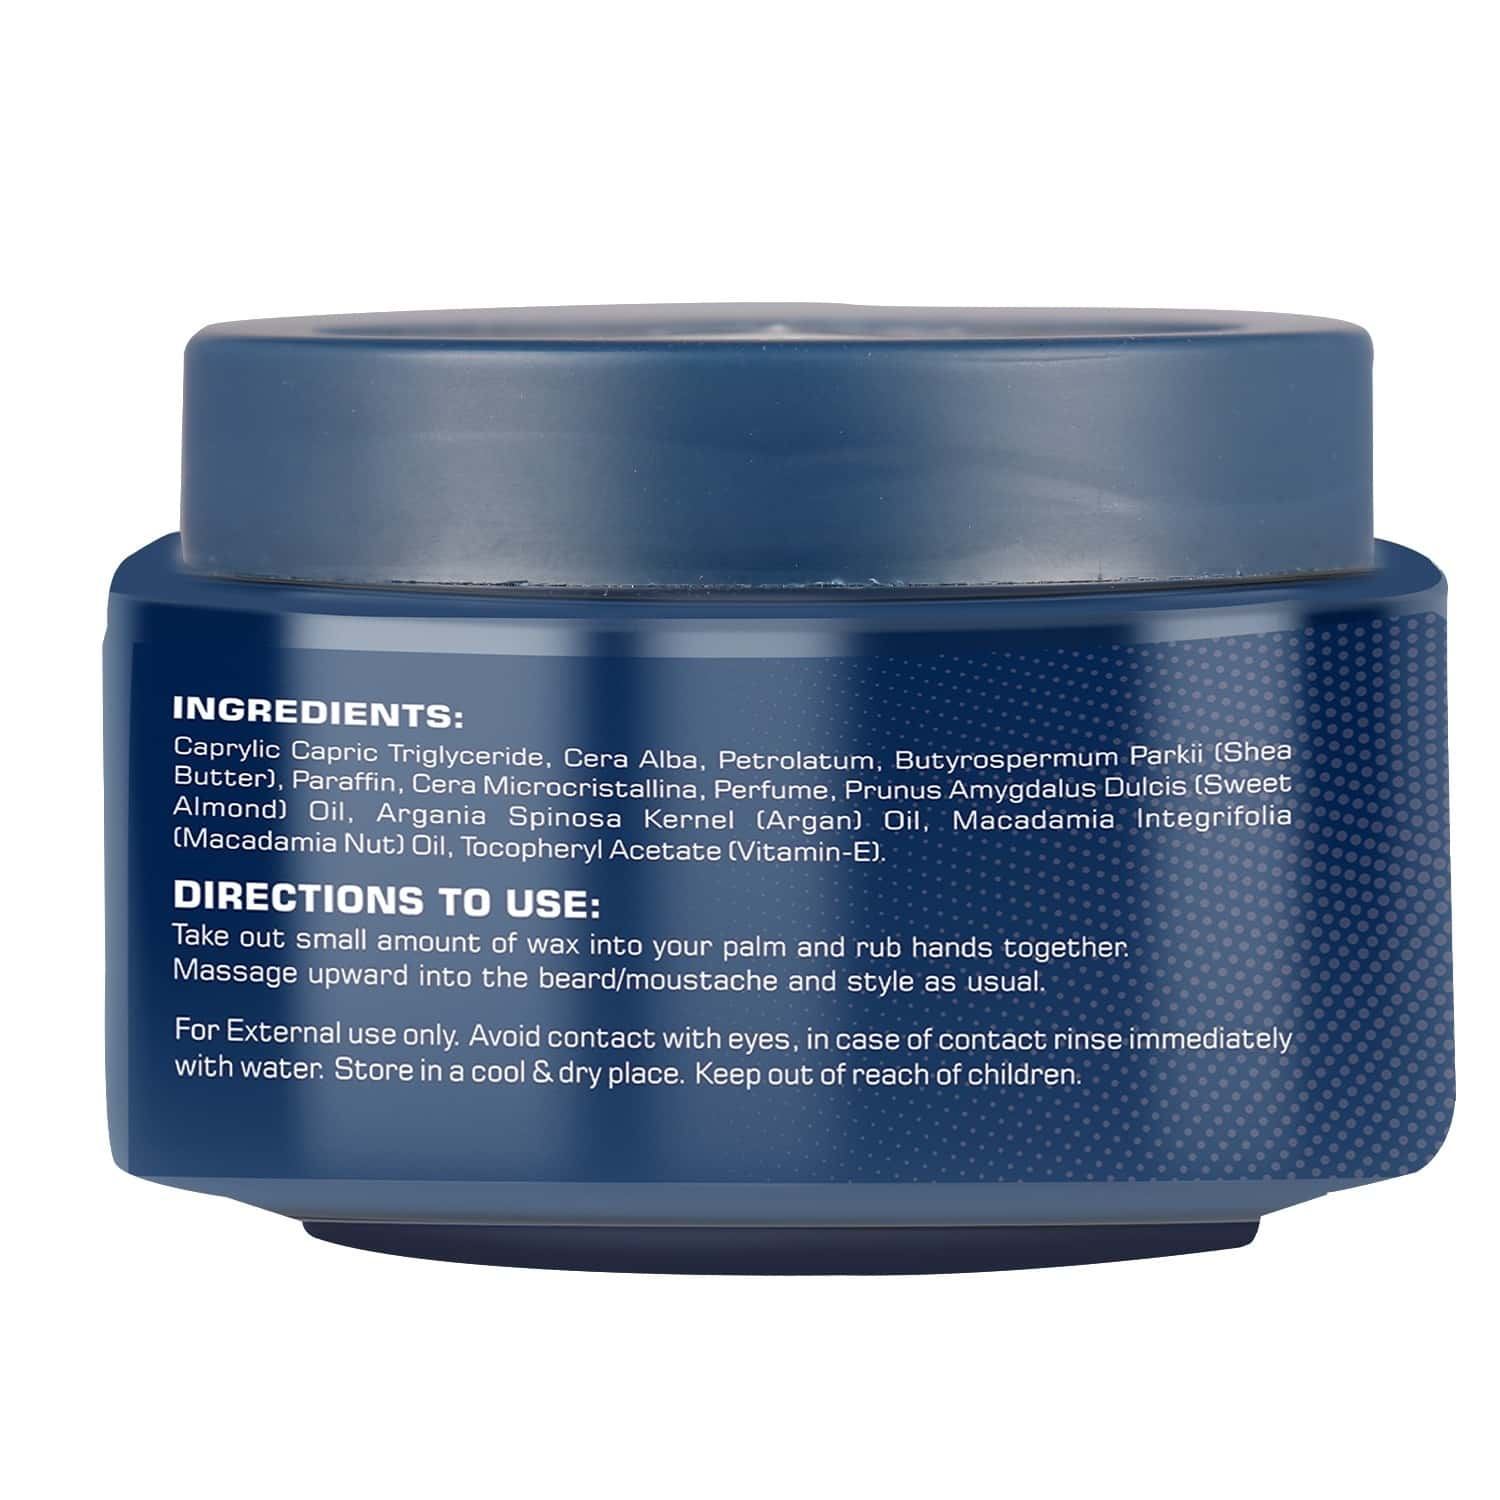 The Beard Story Beard & Moustache Styling Wax,strong Hold With Shine - 45 Gm